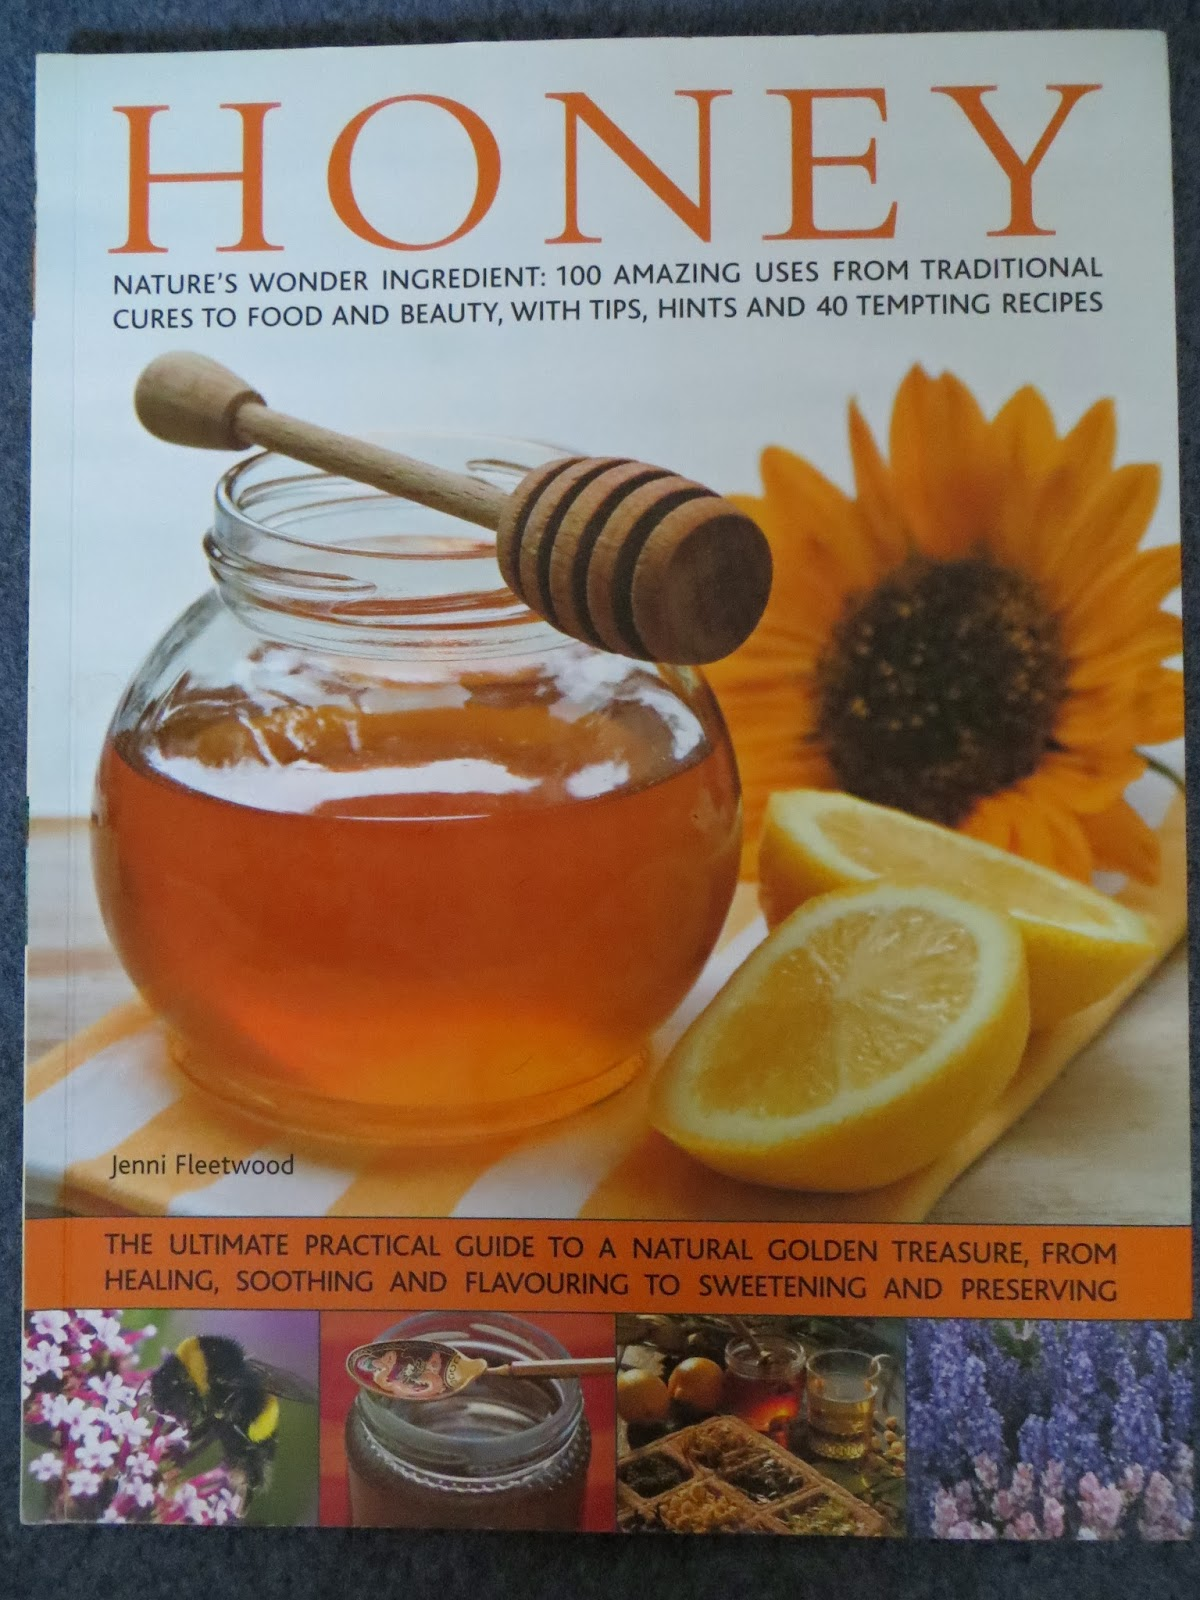 A book on honey and all it's uses.